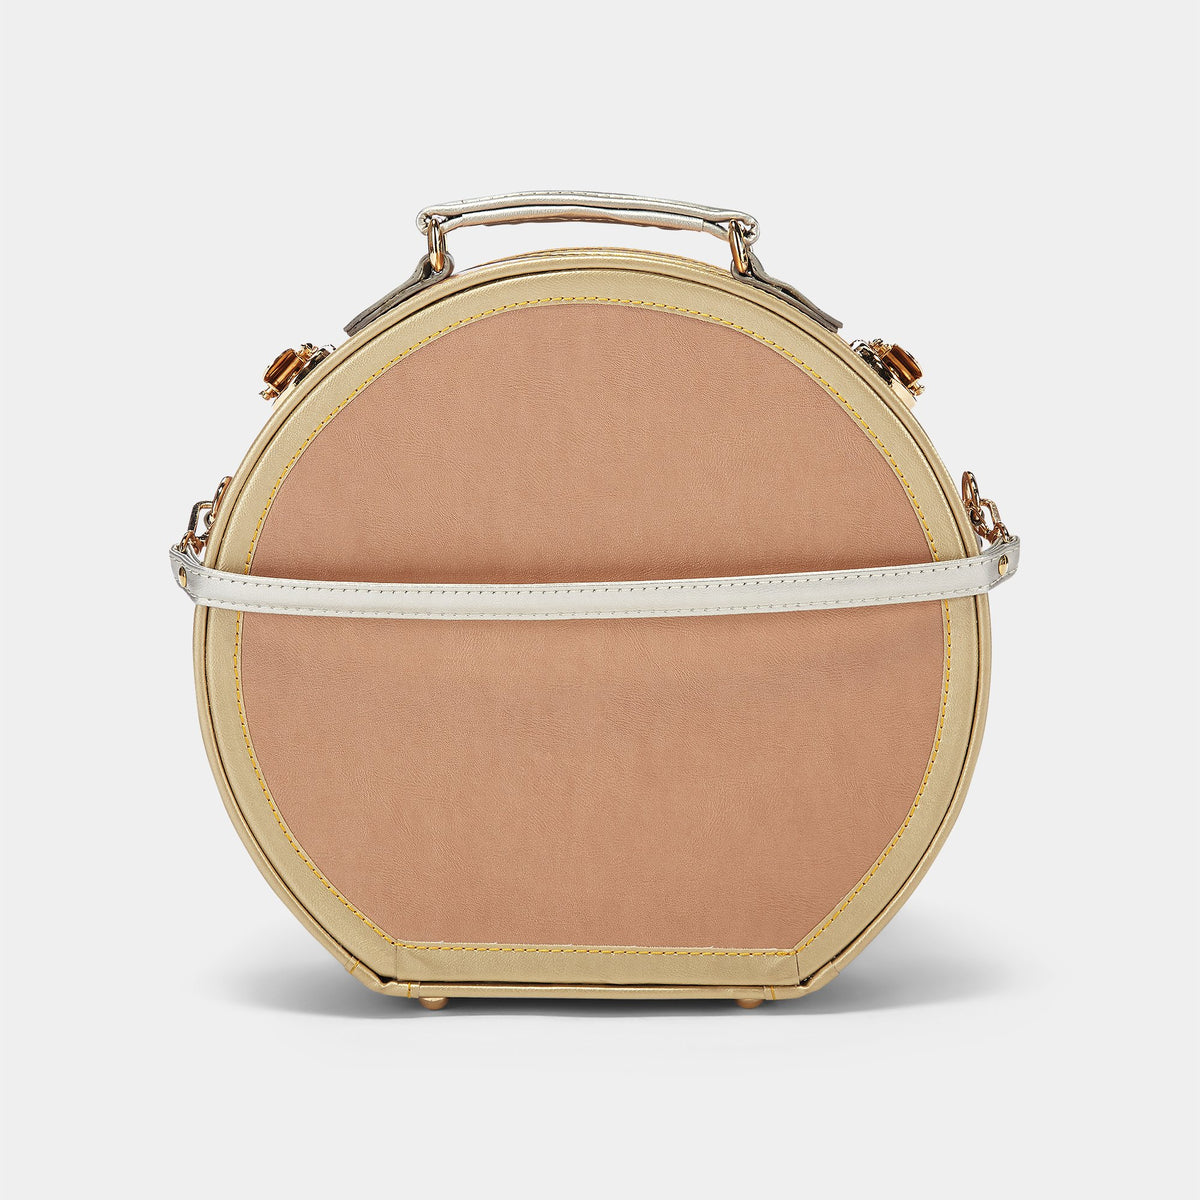 The Alchemist Small Hat Box - Hat Box Hand Luggage - Exterior Back with Straps